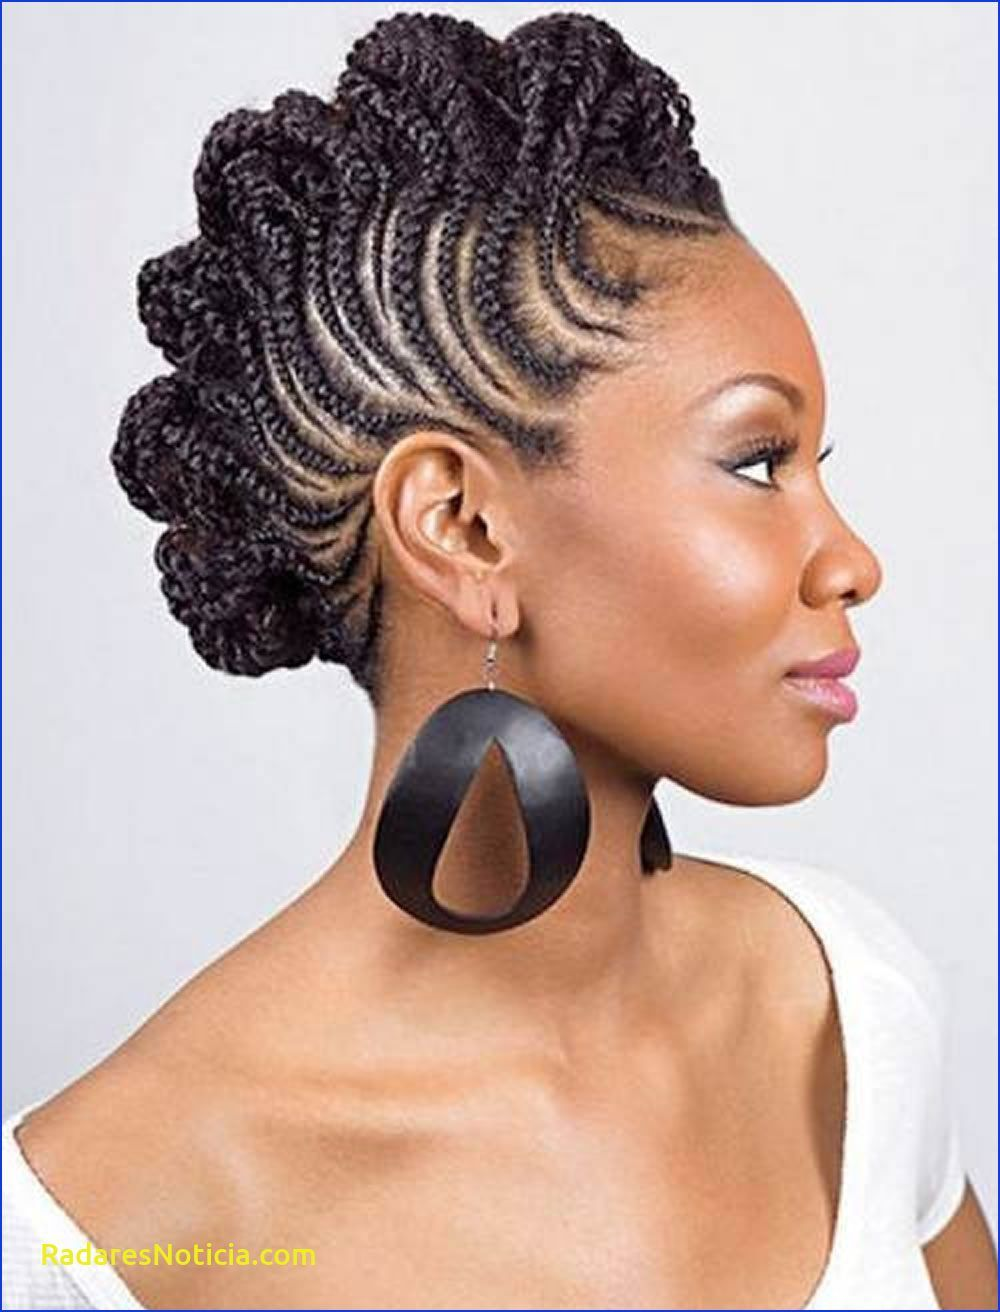 Unique Braids Hairstyles 2018 Pictures South Africa Natural Hair